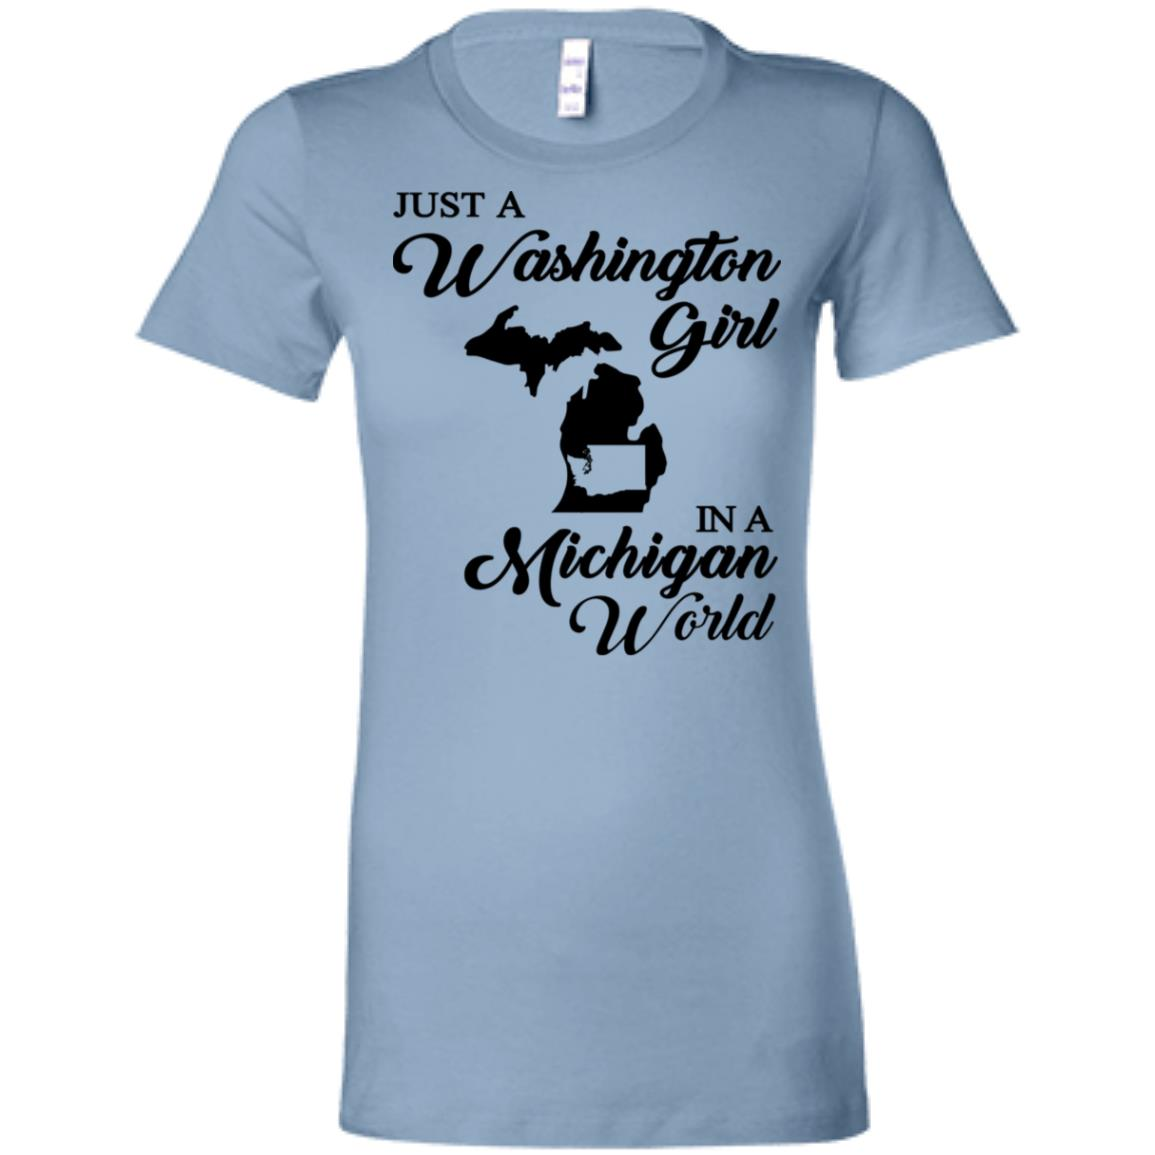 Just A Washington Girl In A Michigan World T Shirt